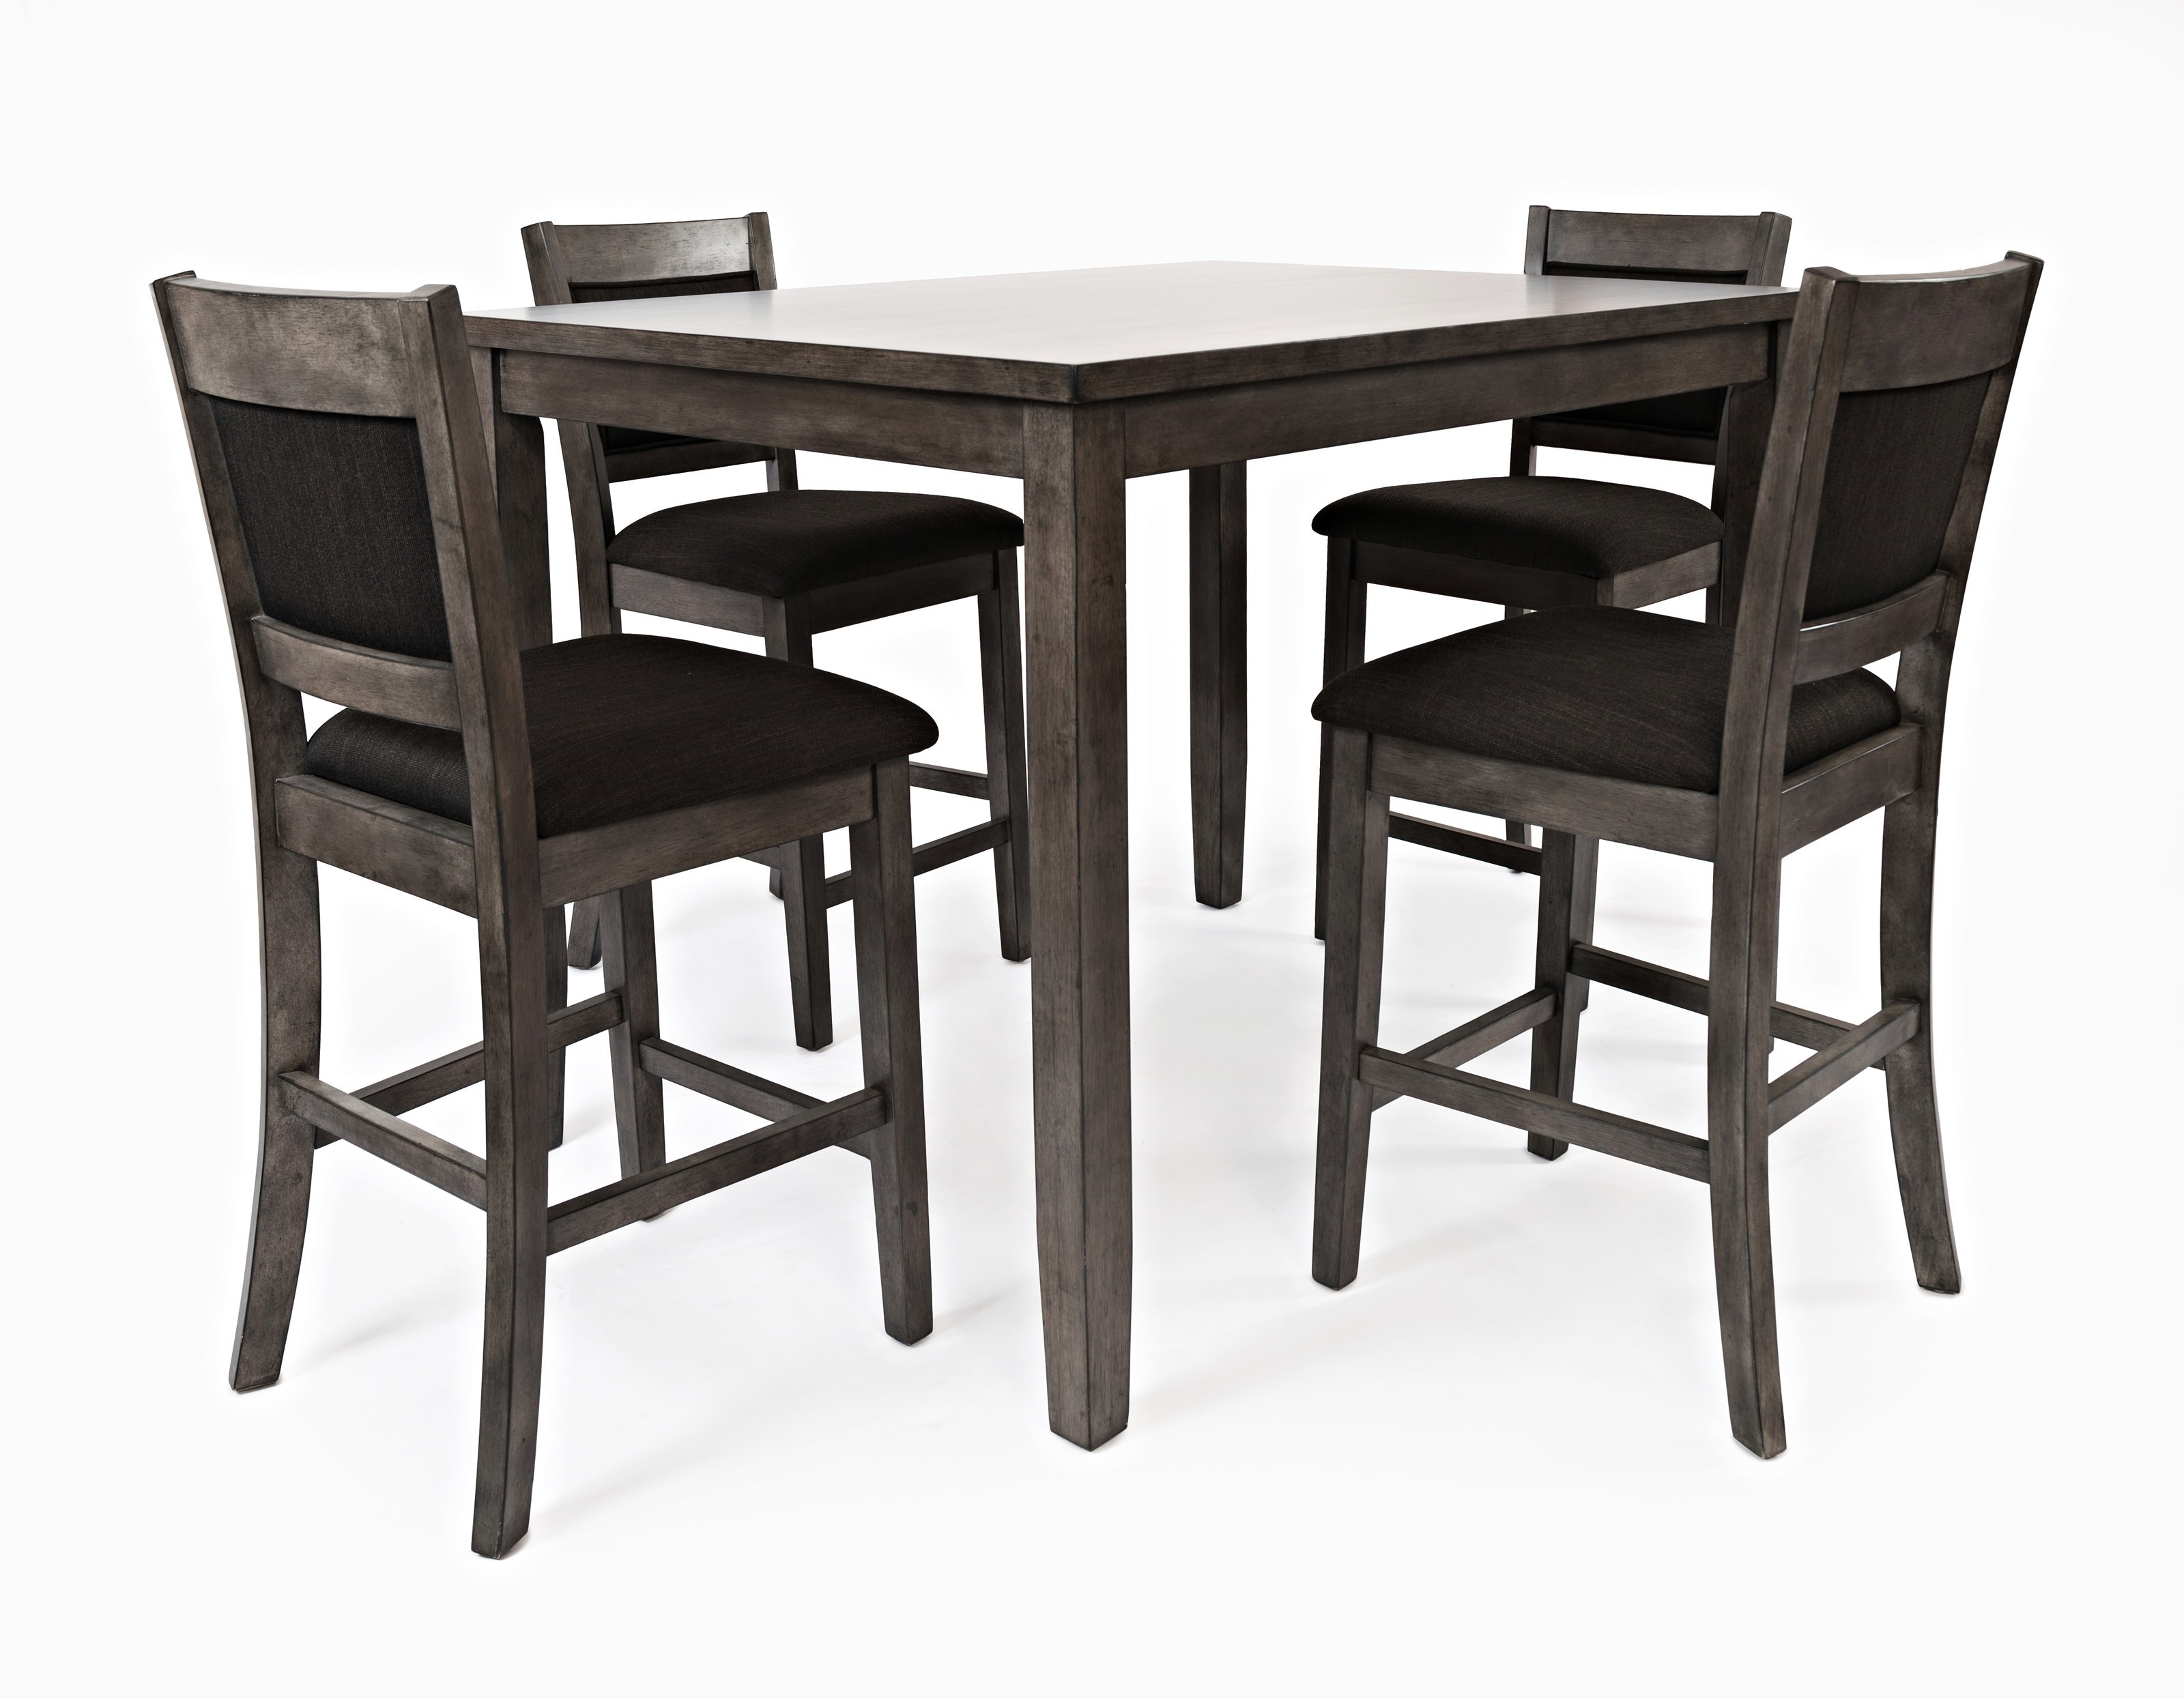 4 chair dining set ergonomic parts braden 5 piece counter height includes table and chairs